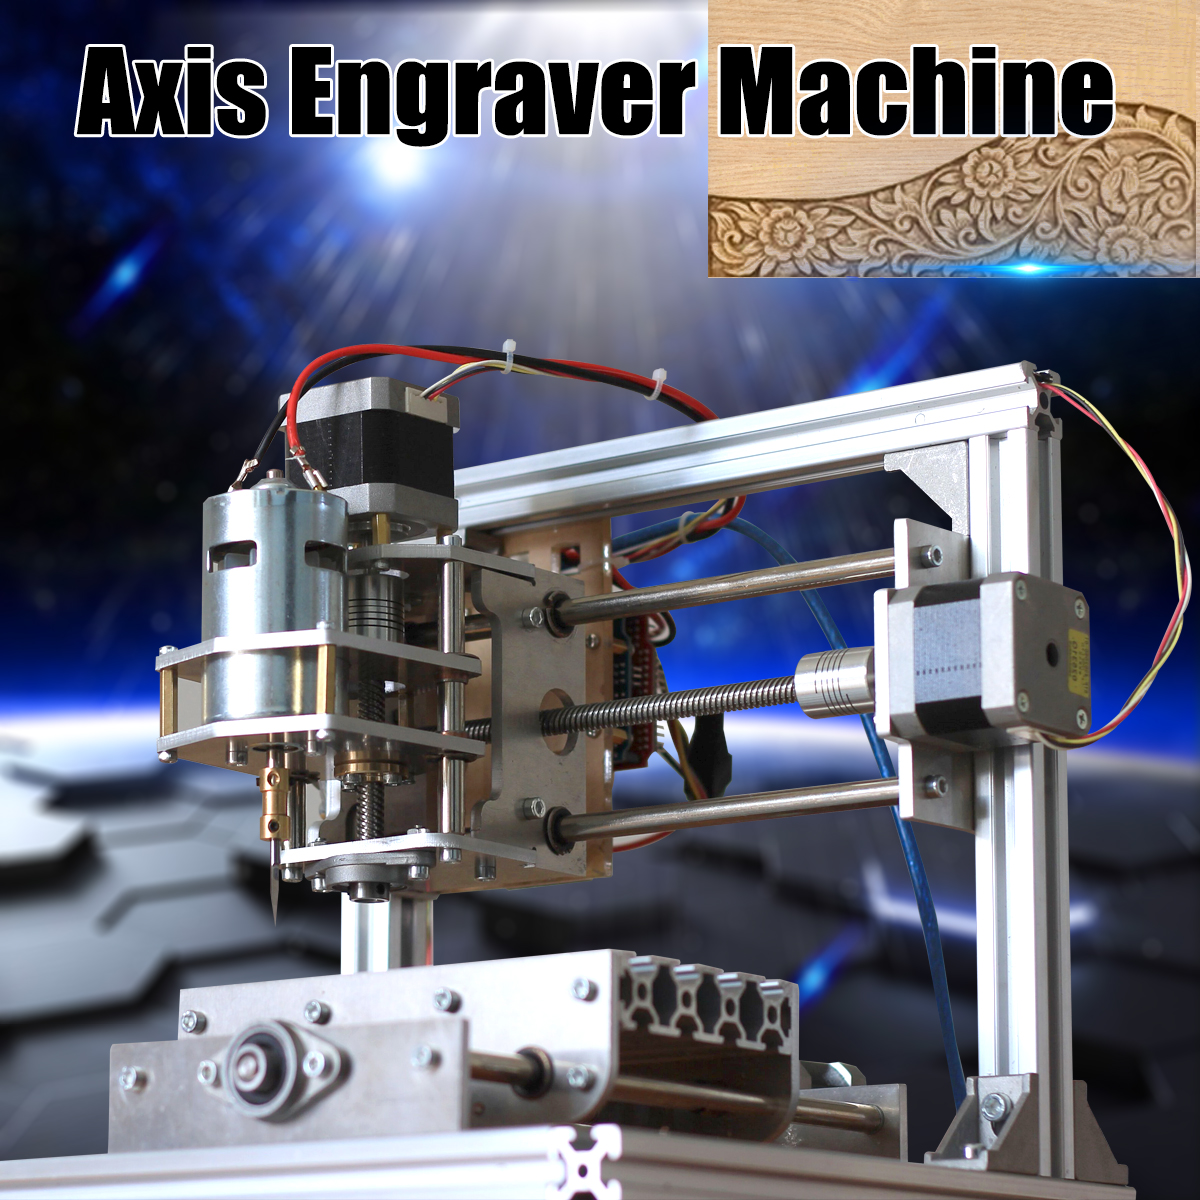 DIY Mini 24V 5A 3 Axis CNC Engraver Engraving Machine 130x100x40mm PCB Milling Wood Carving Engraving Router Kit for Grbl Board new grbl mini cnc machine wood router xyz 3 axis pcb milling cnc machine diy wood carving pvc engraver